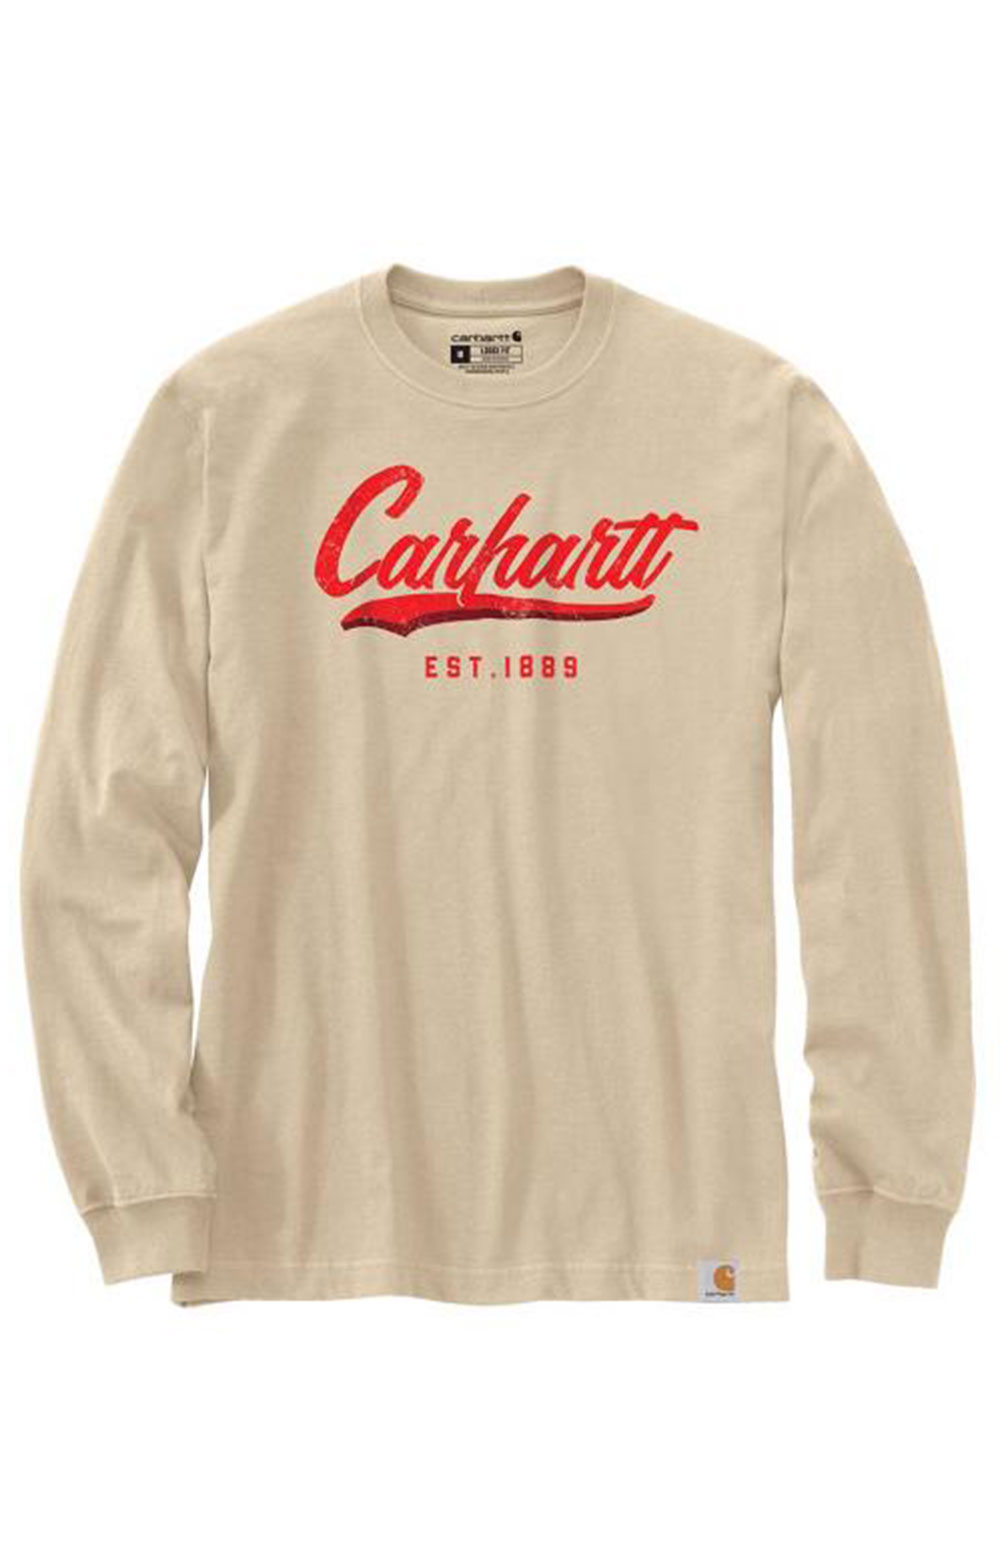 (104890) Loose Fit Heavyweight L/S Hand-Painted Graphic T-Shirt - White Truffle